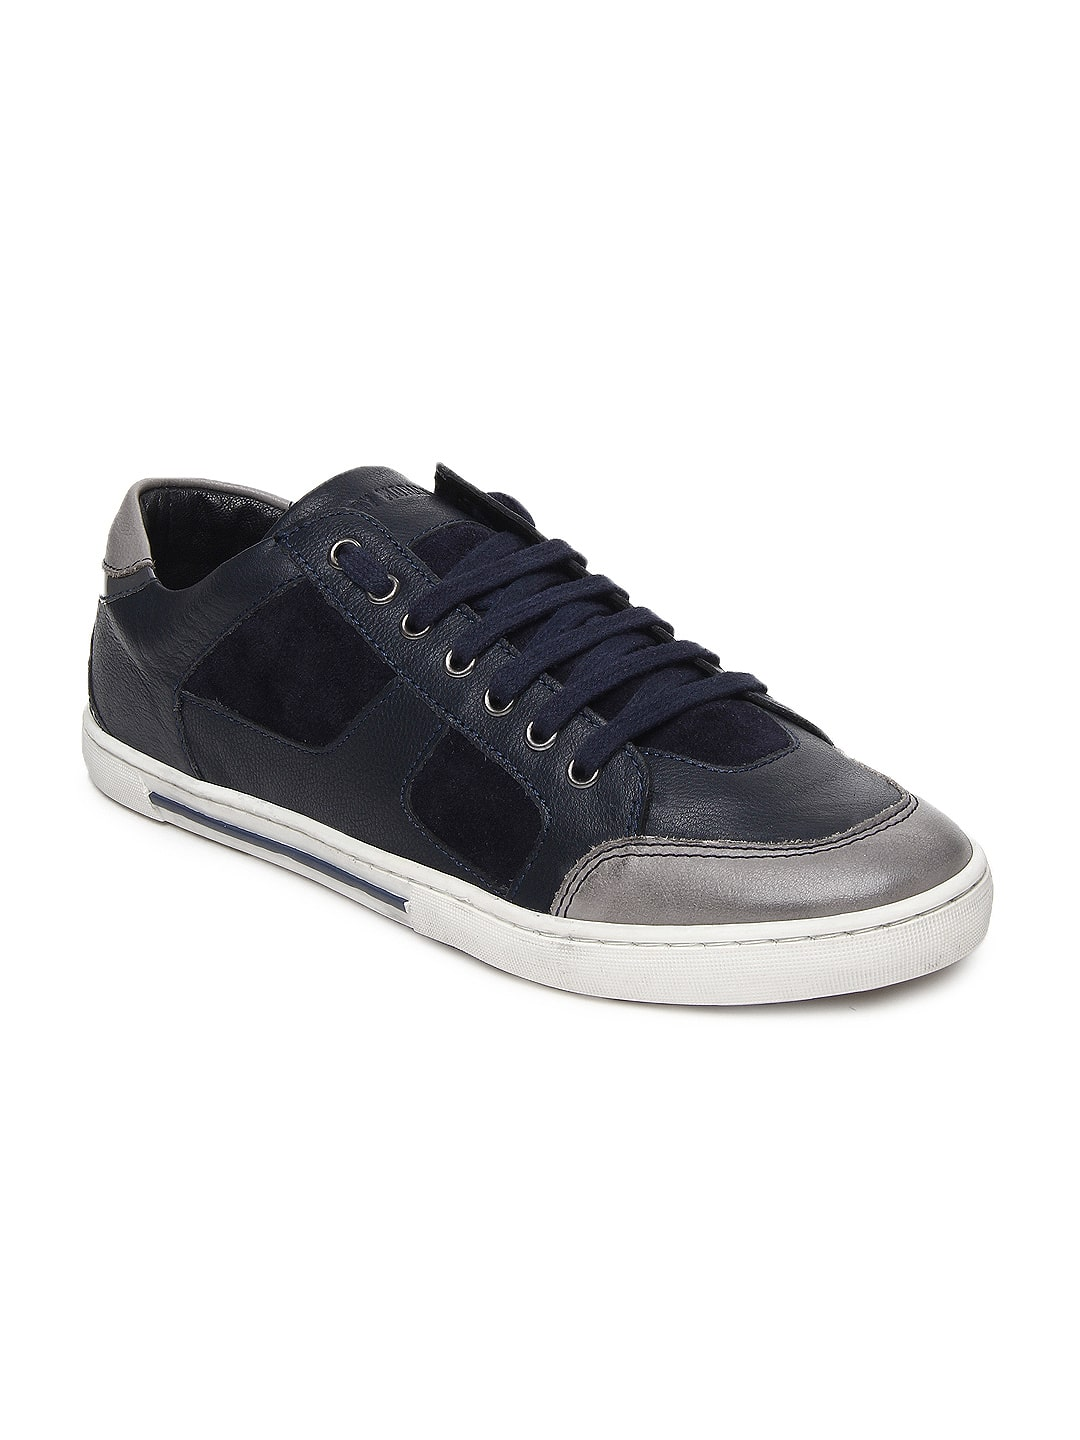 antony morato vintage men navy sneakers. Black Bedroom Furniture Sets. Home Design Ideas